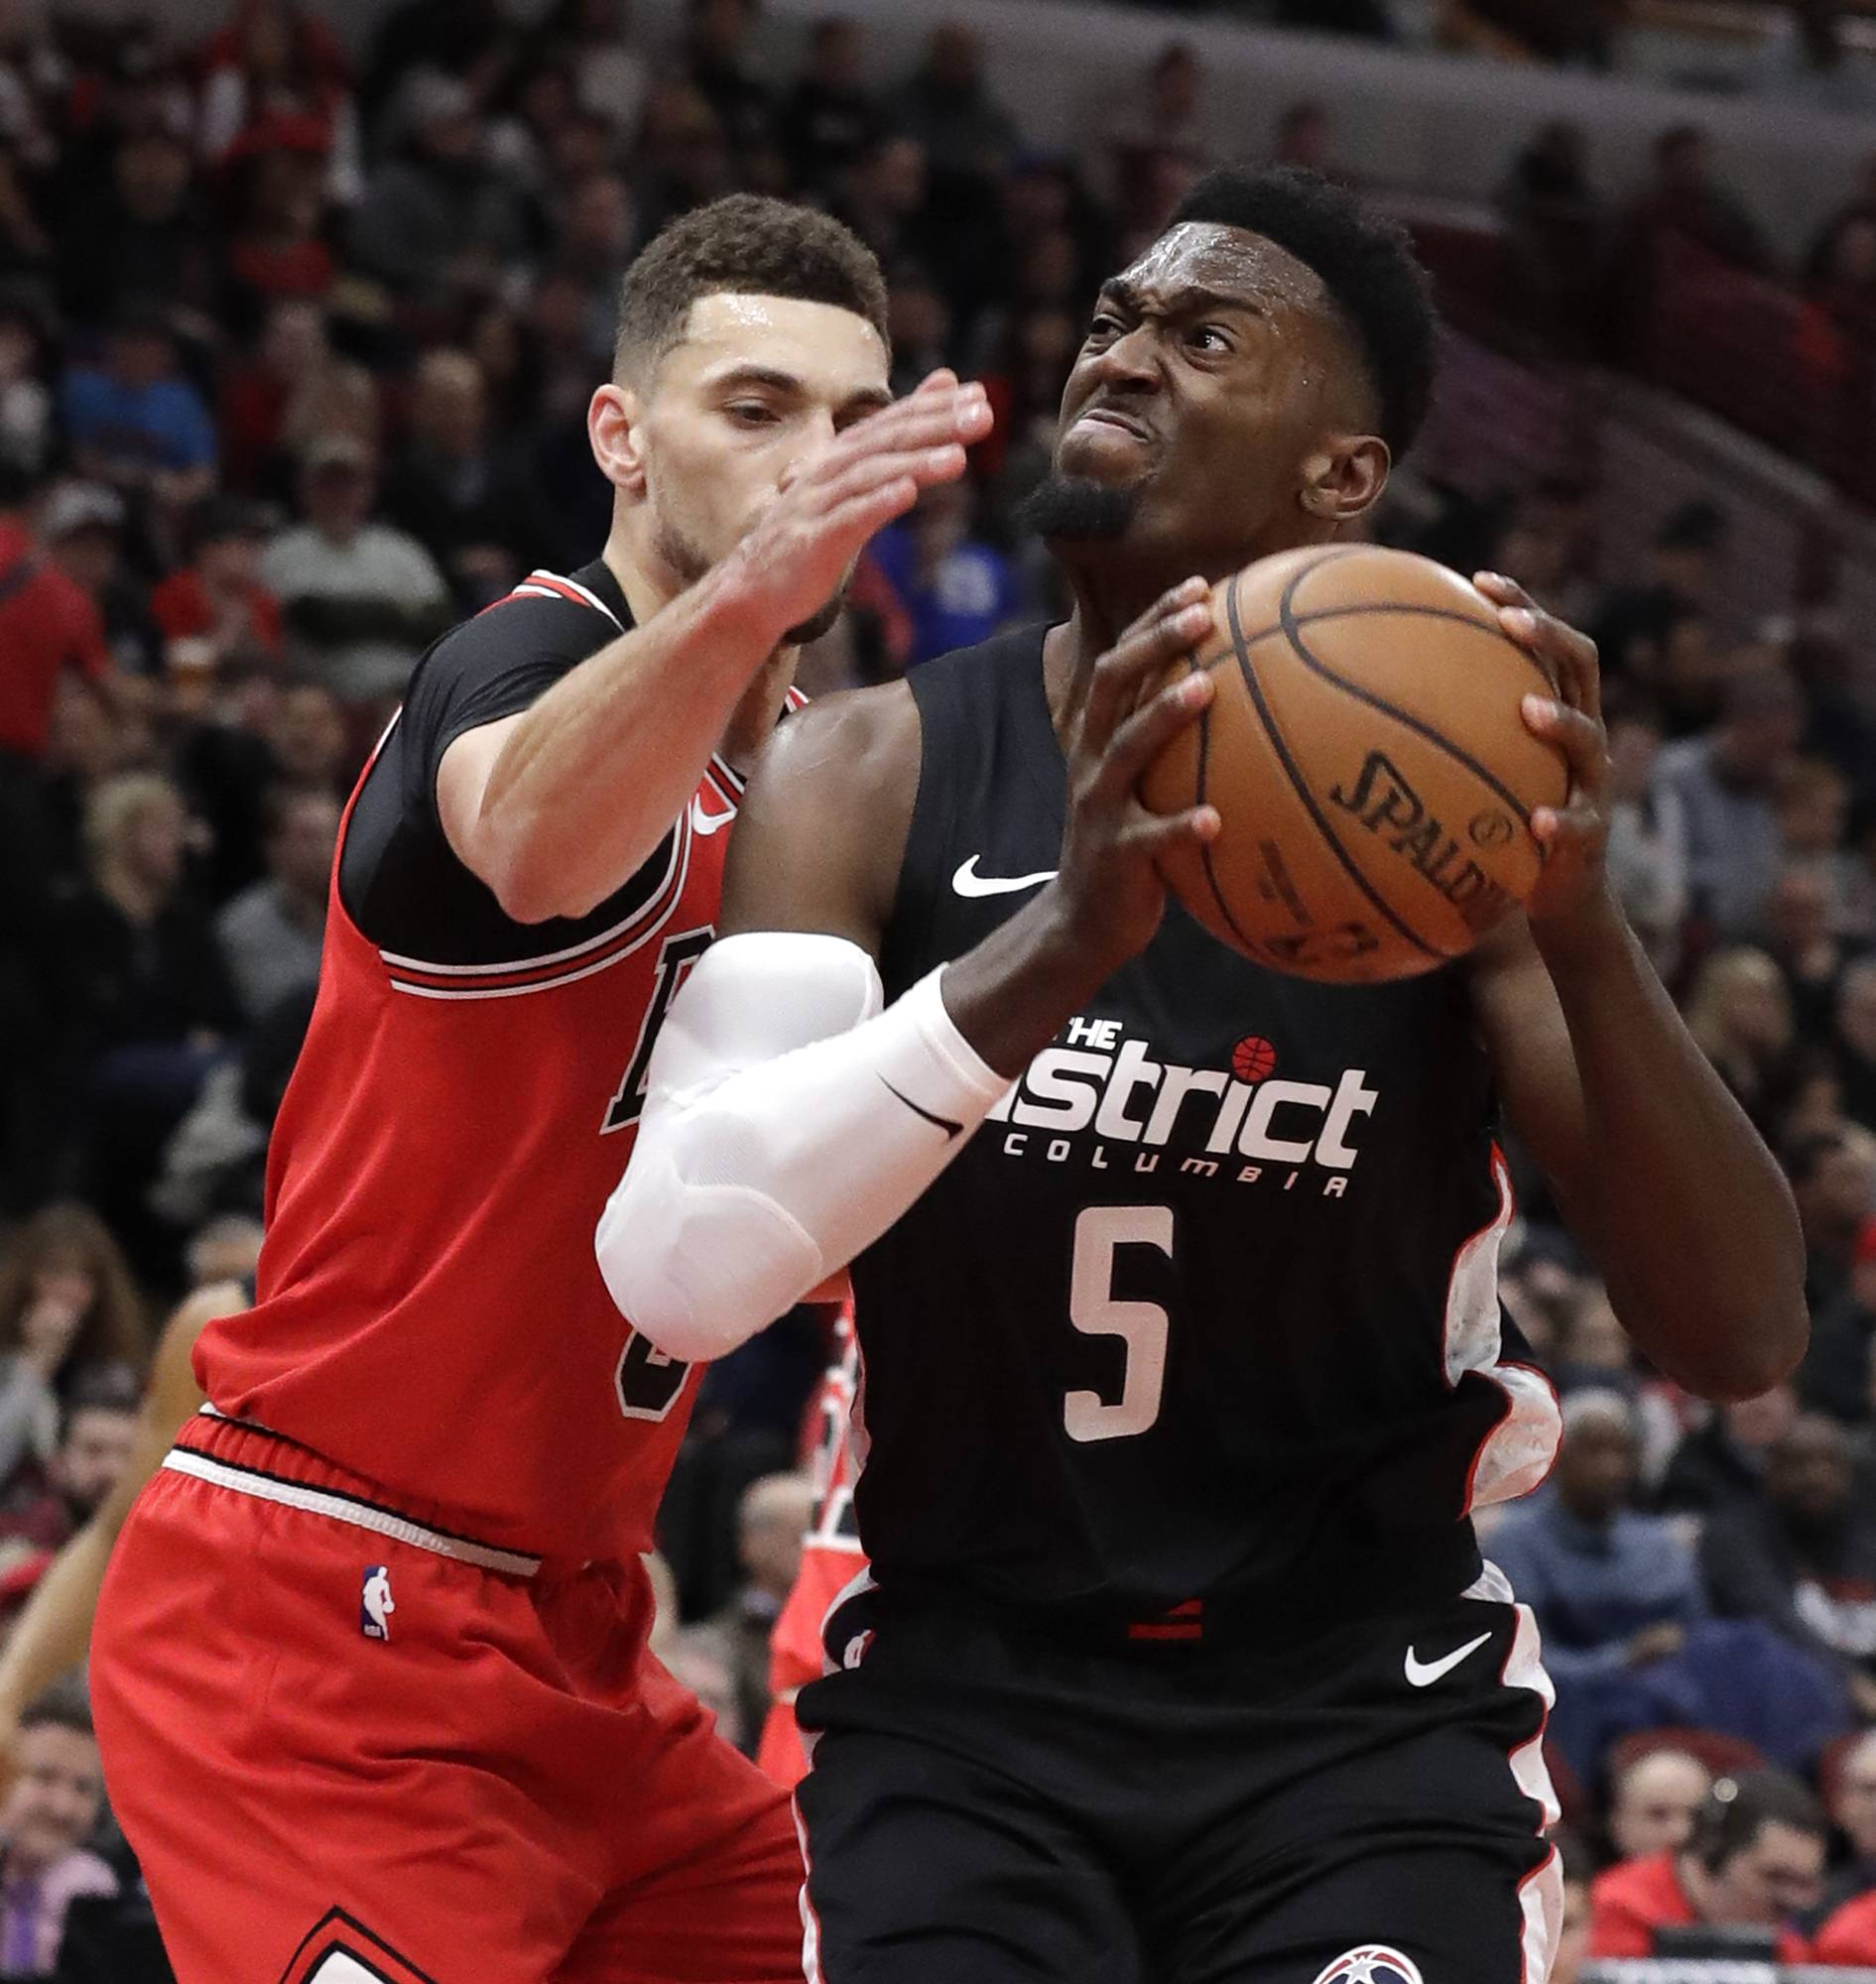 Washington Wizards forward Bobby Portis, right, drives to the basket against Chicago Bulls guard Zach LaVine during the first half of an NBA basketball game Saturday, Feb. 9, 2019, in Chicago.